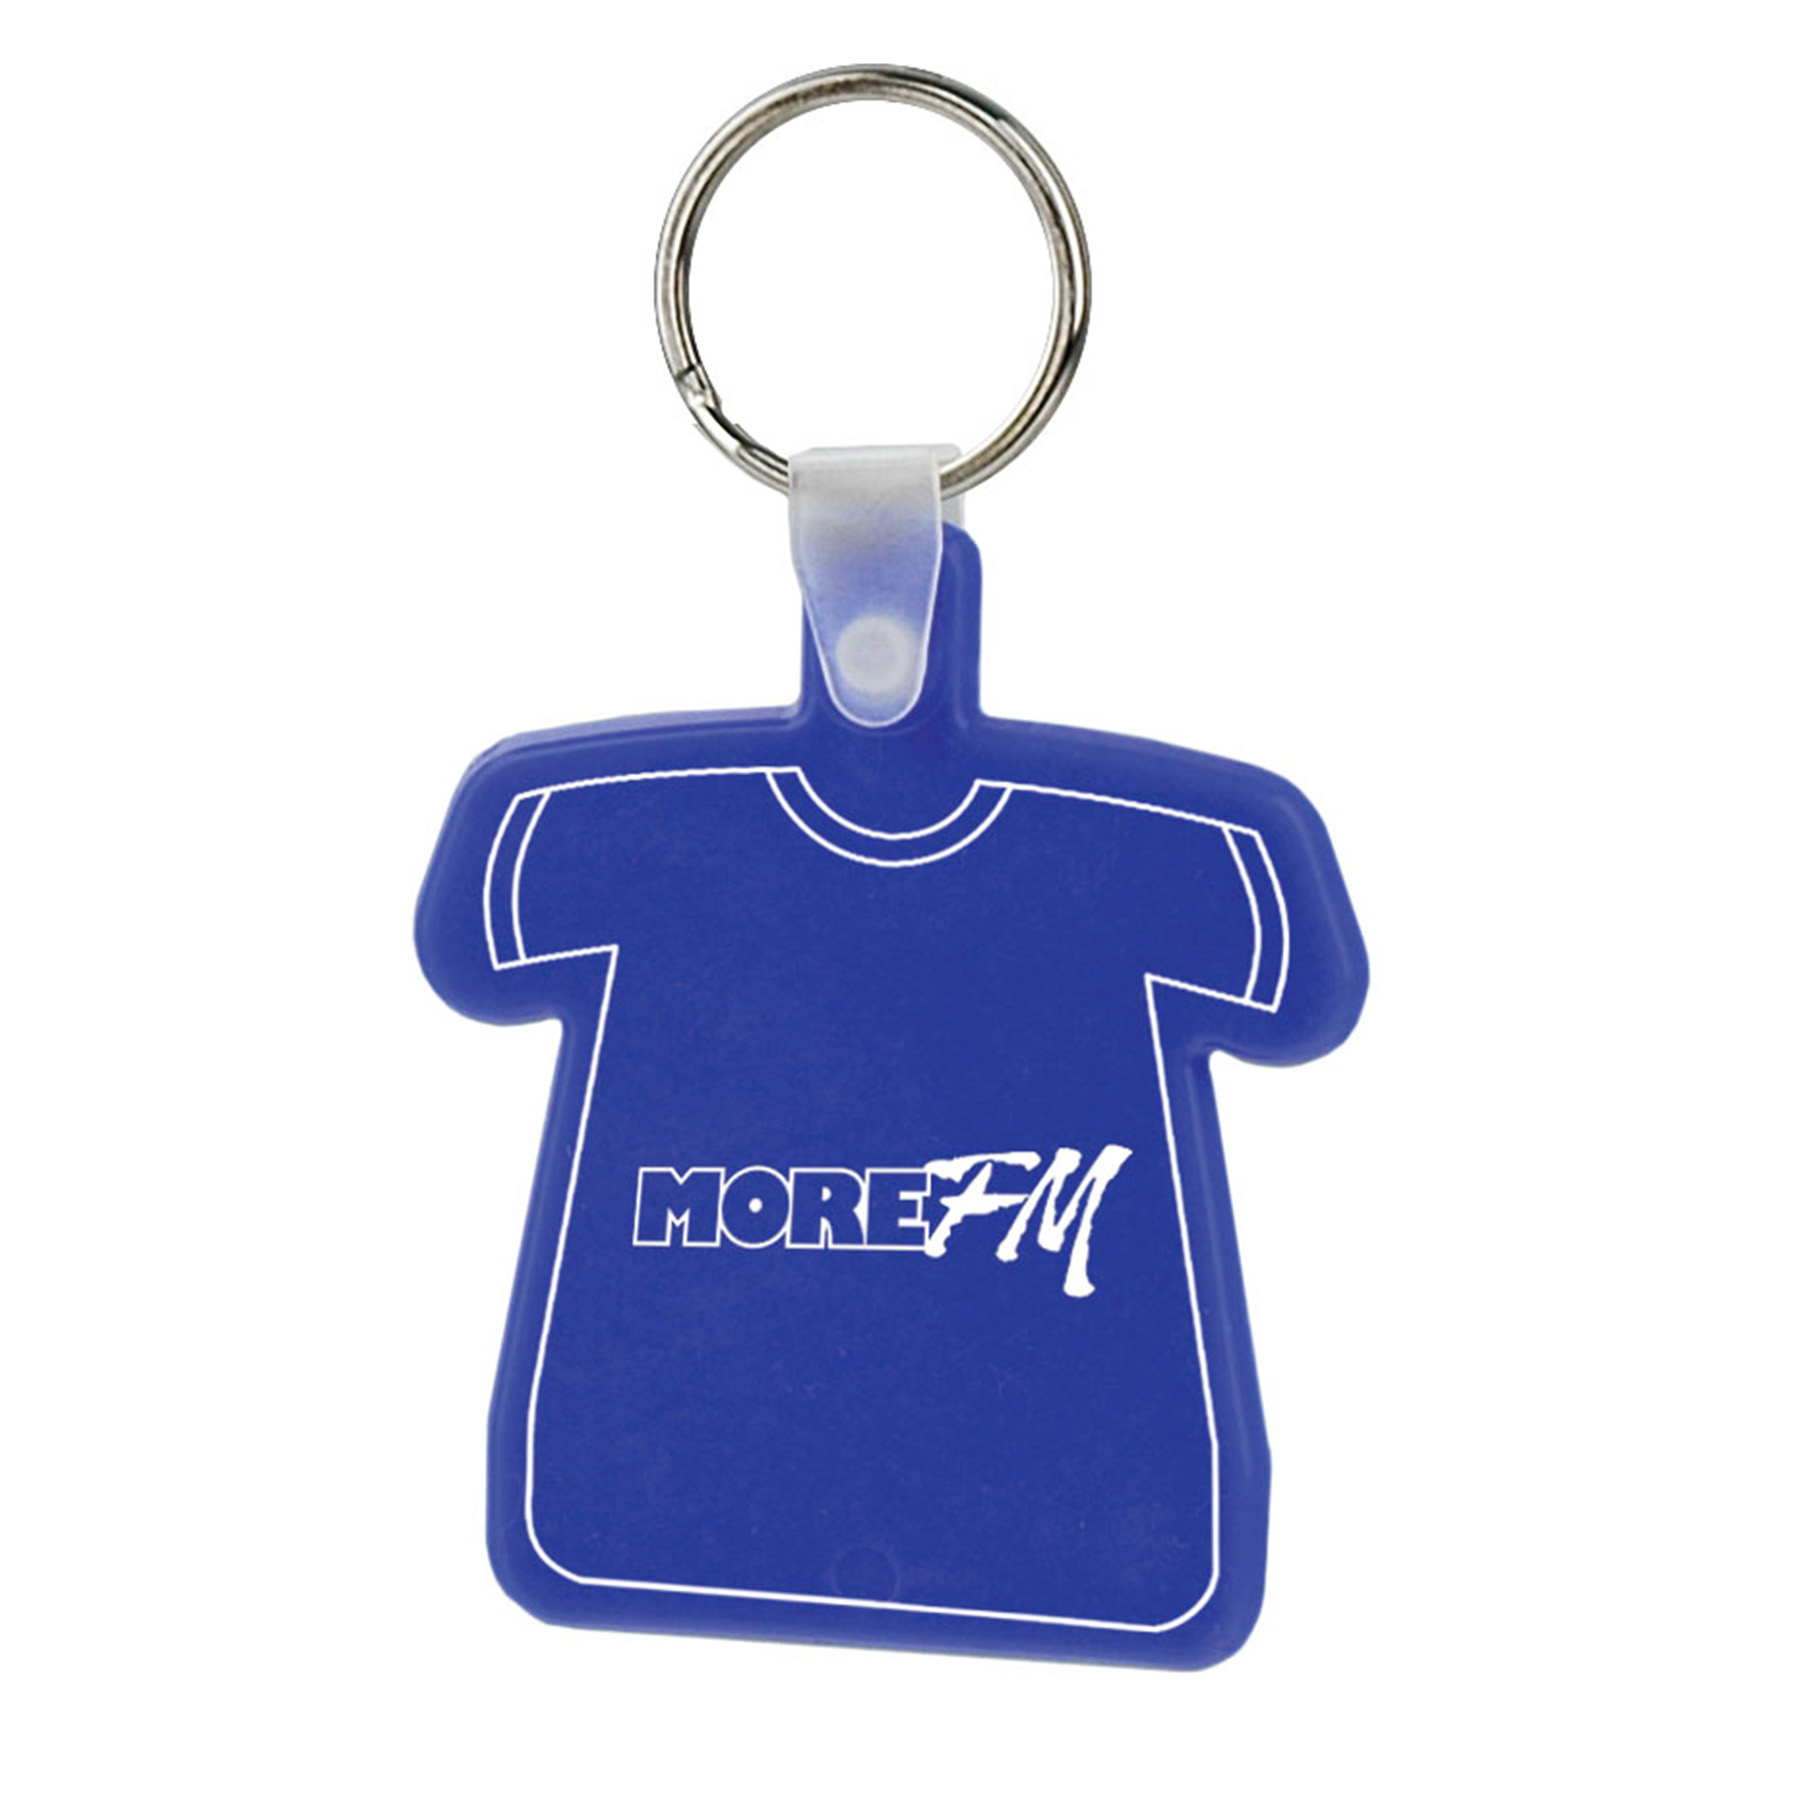 Soft Squeezable Key Tag (T-Shirt), 2146-K, One Colour Imprint